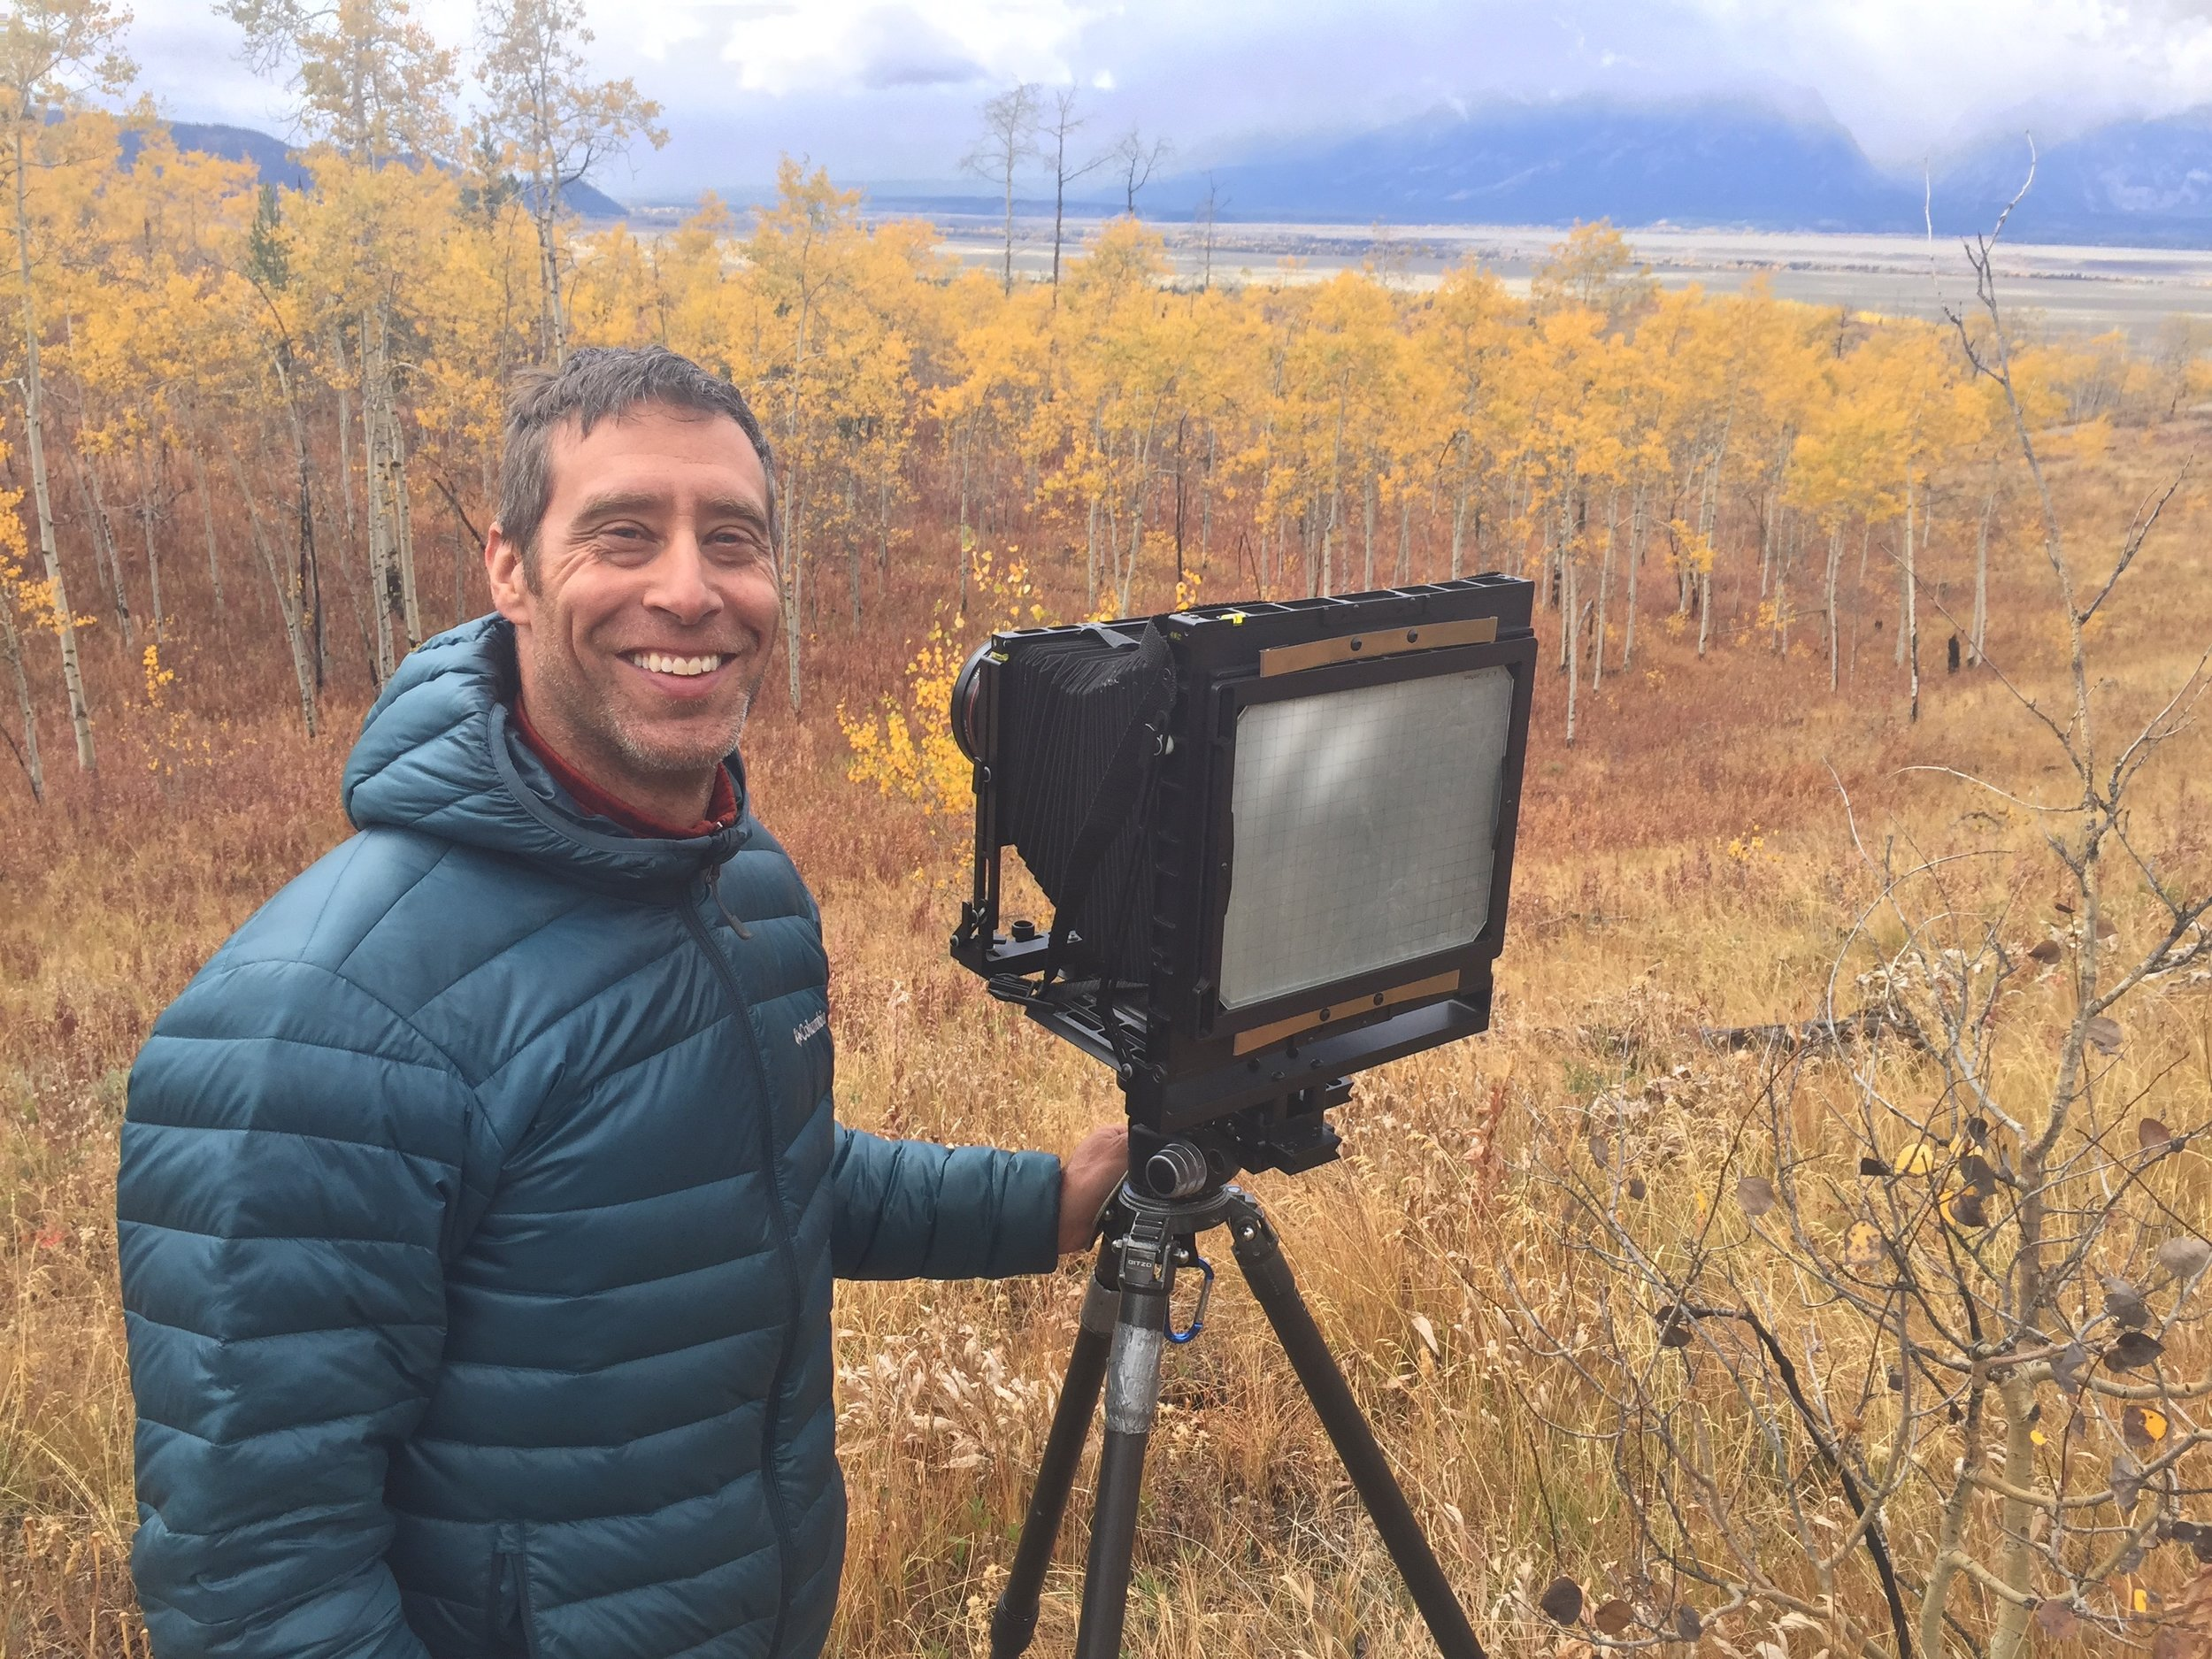 Jon Paul with his 8x10 film camera, enjoying his time in the field. Grand Teton National Park, Wyoming. Photo by Noah Paul